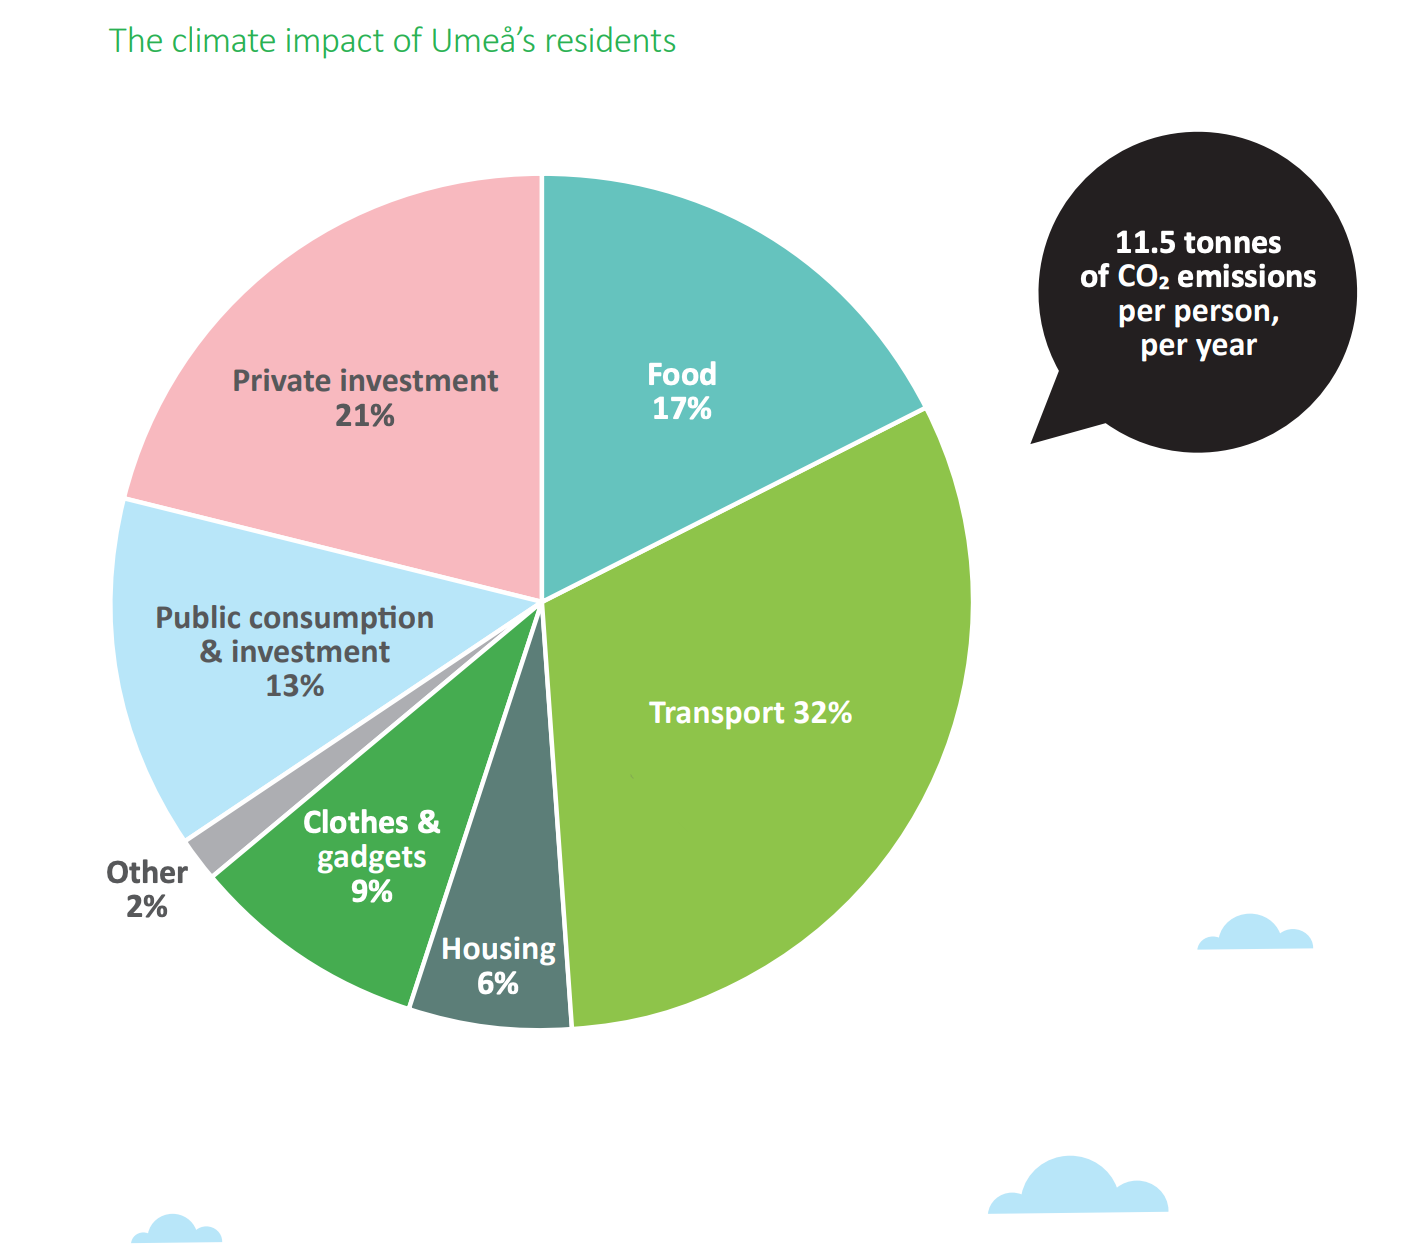 Umeå was the first city in Sweden to conduct a survey of their local consumption habits connected to GHG emissions. The results led them to change the way they approach their climate plans and actions.